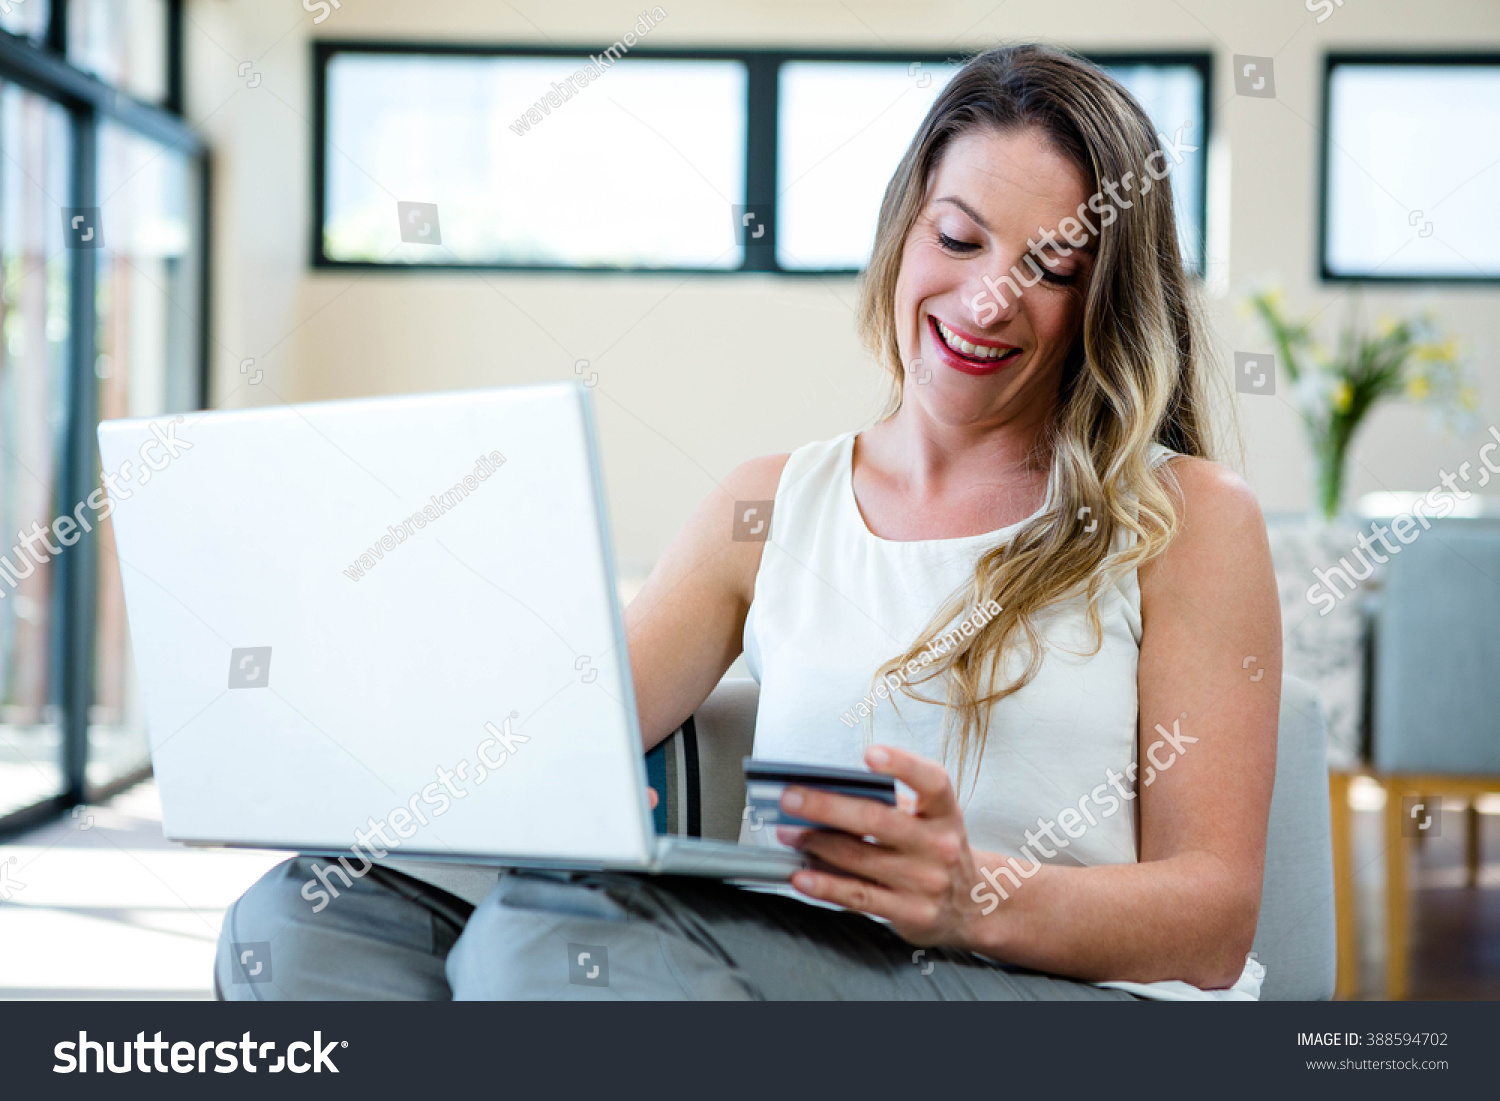 Smiling woman sitting on couch on stockfoto 388594702 shutterstock - Voorbeeld volwassene kamer ...